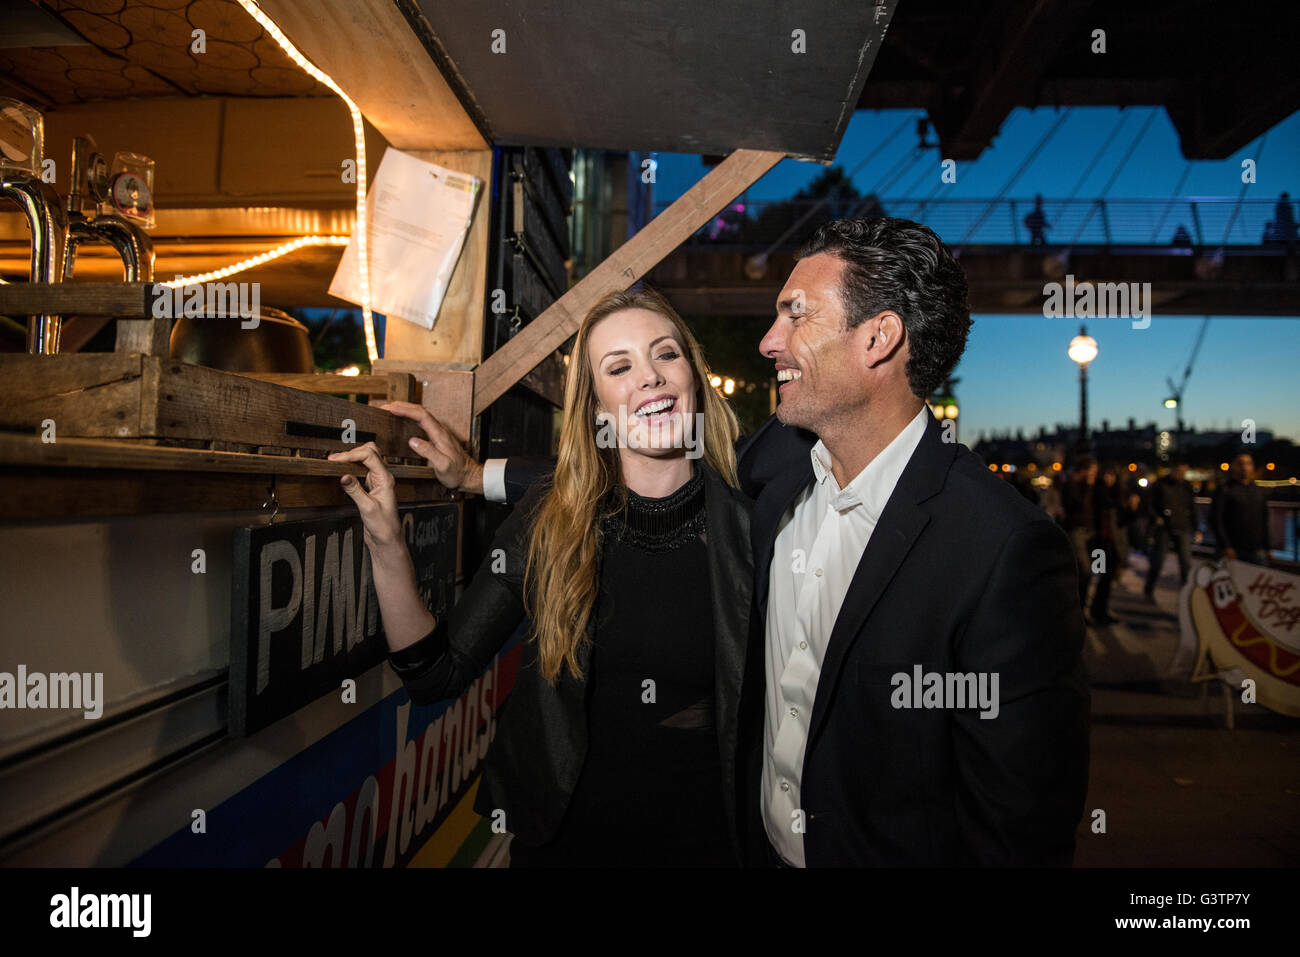 A smartly dressed couple buying drinks from a kiosk on the South Bank in London. - Stock Image